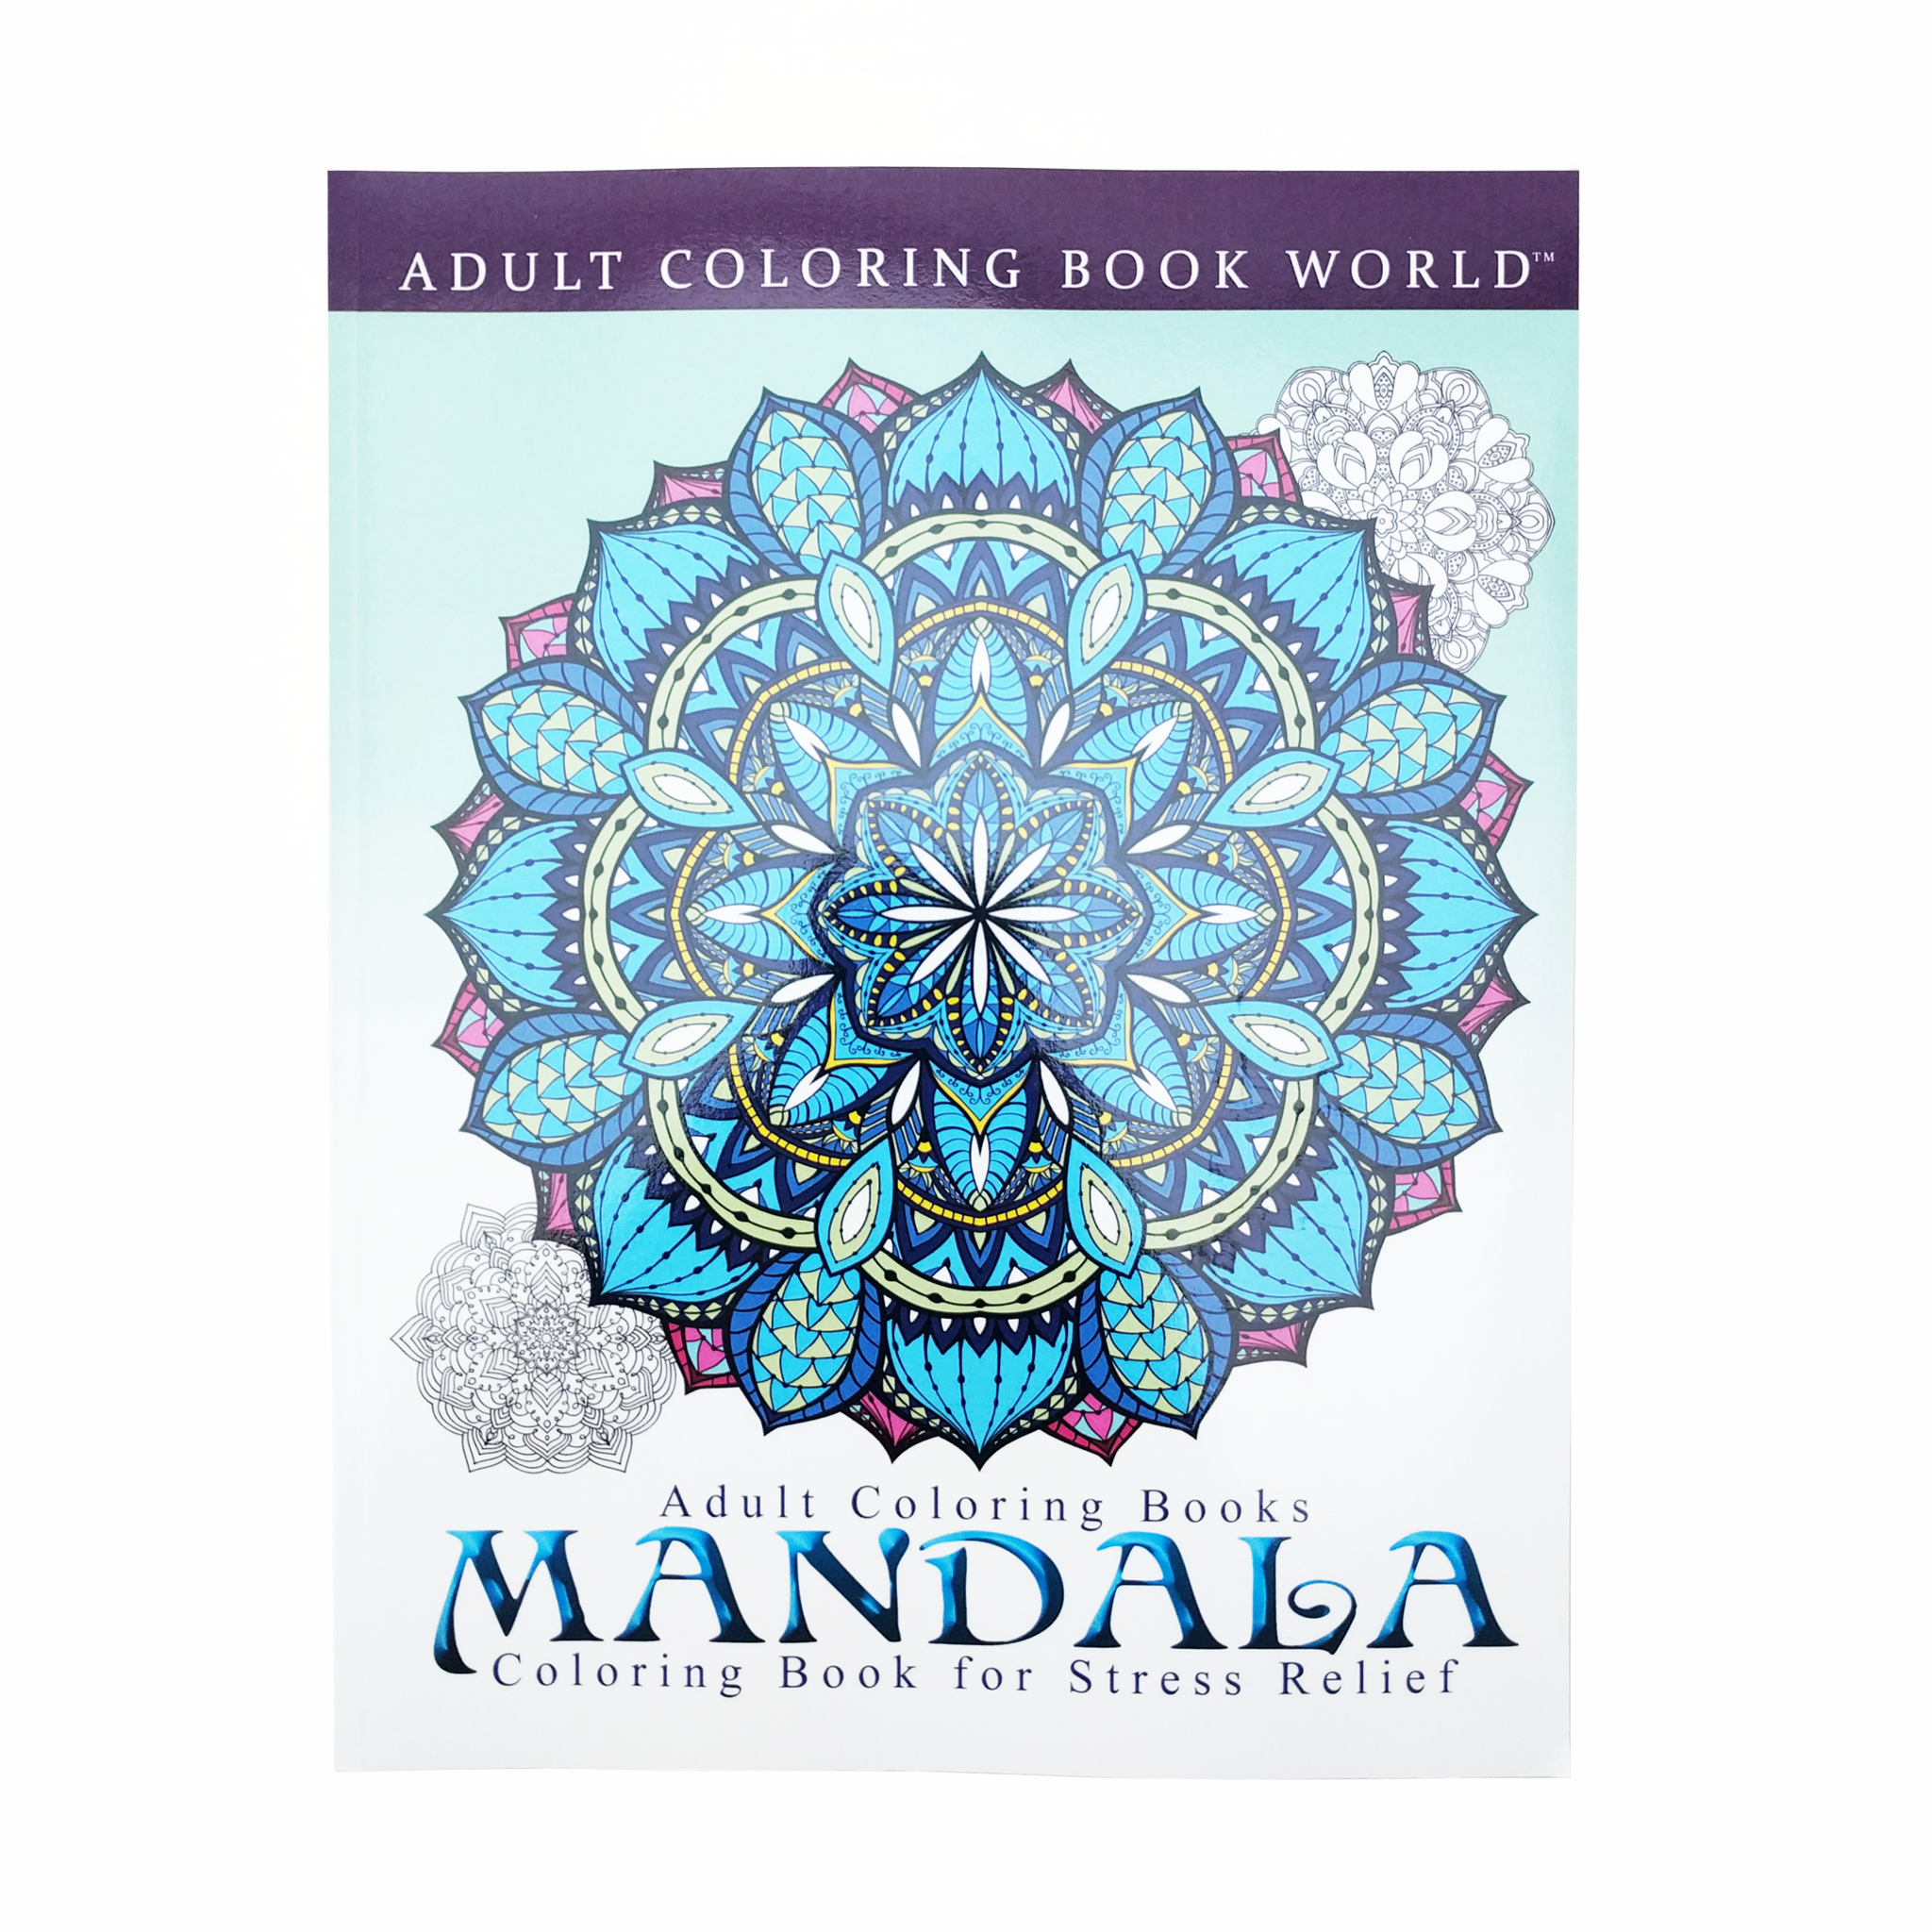 Adult Colouring Book Mandala Coloring For Stress Relief